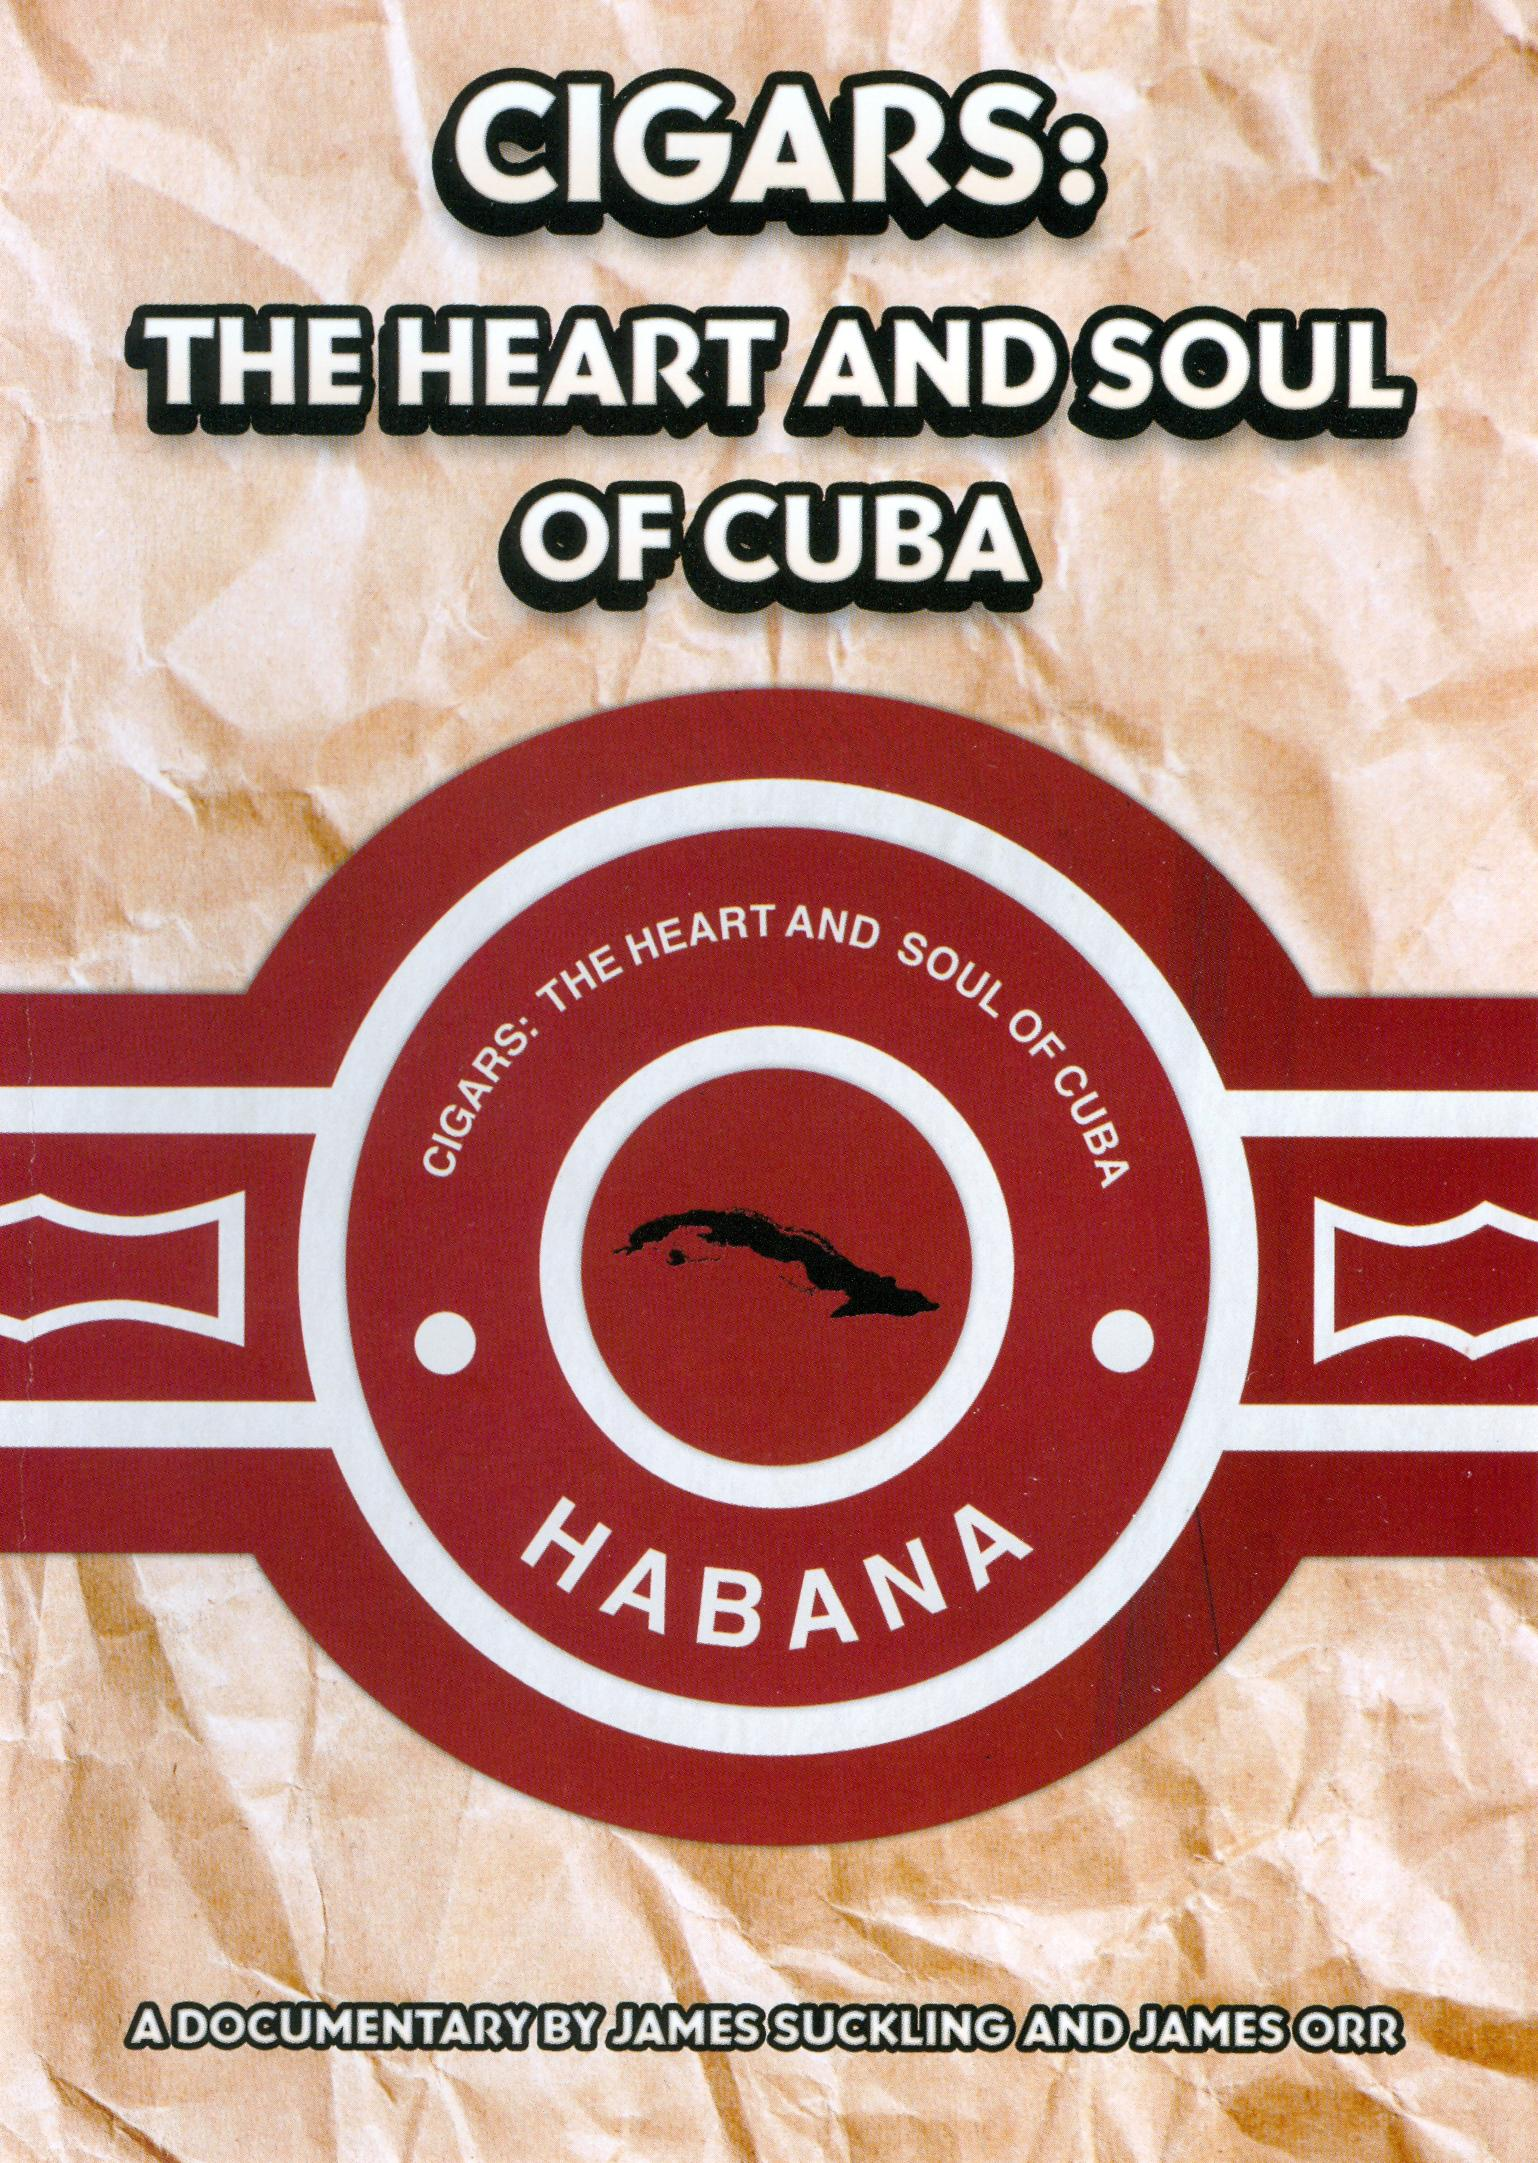 Cigars: The Heart and Soul of Cuba